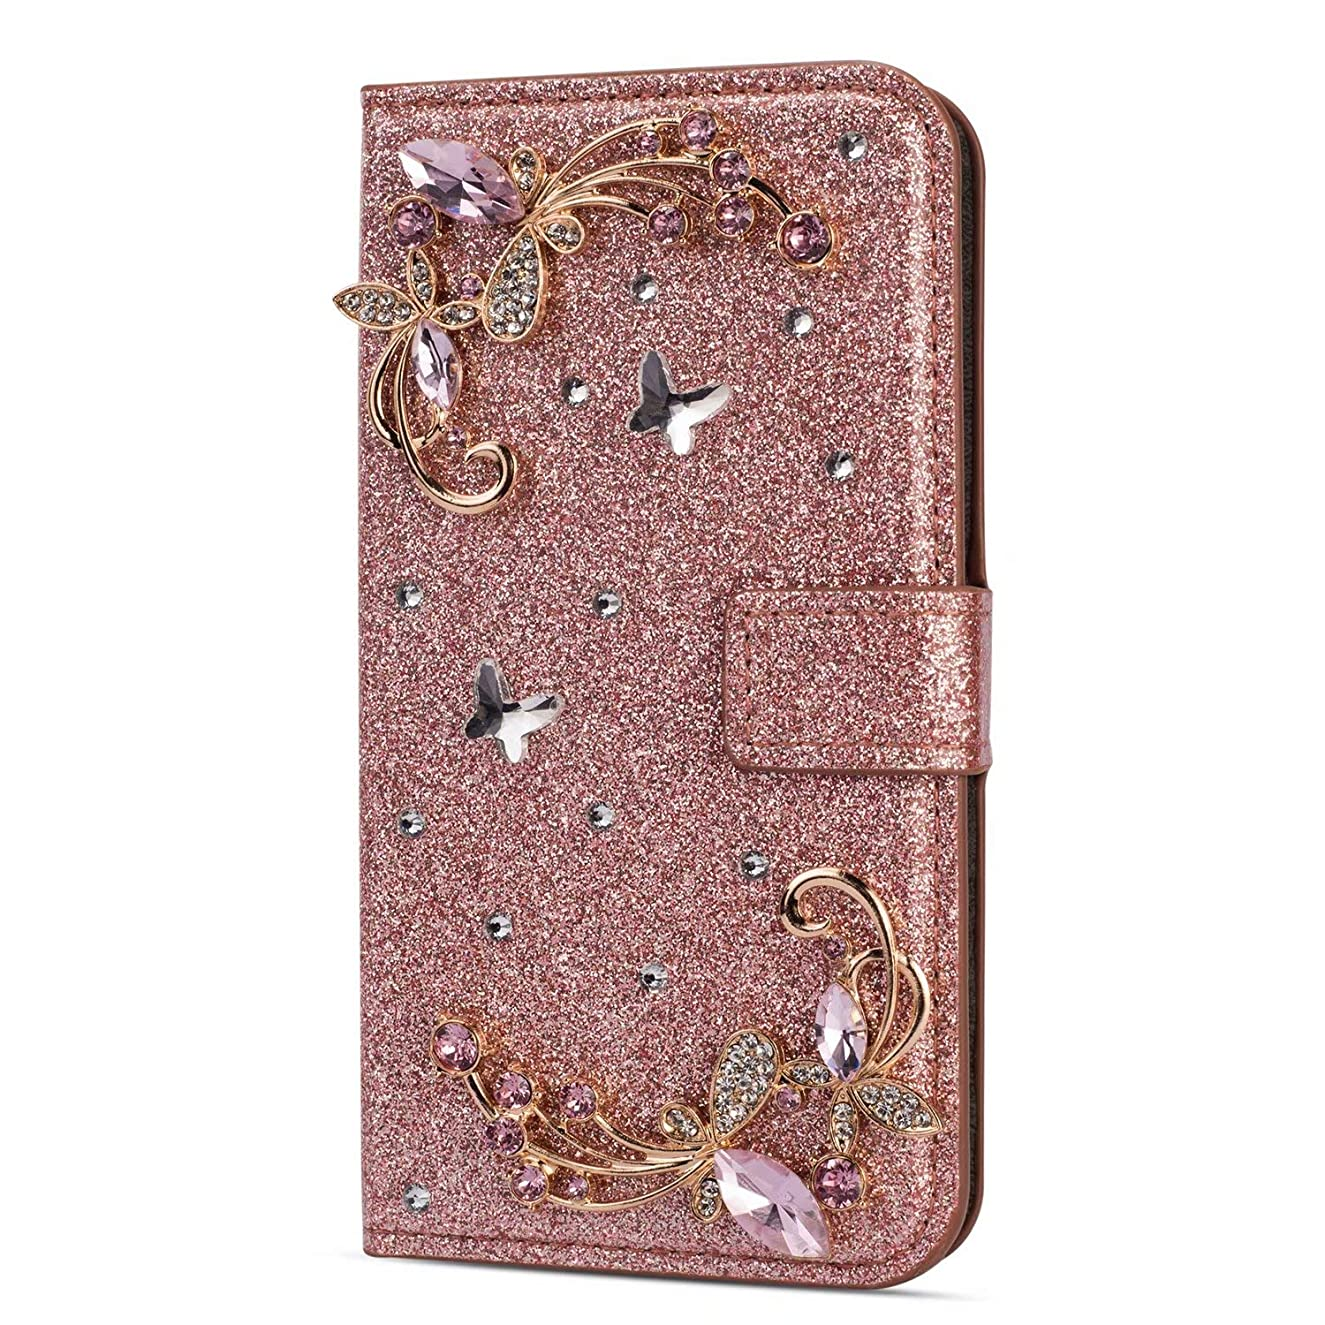 iPhone 8/7 Gemstone Flower Case,Luxury Design Bling Diamond Glitter Cute Flower PU Leather Wallet Case,Magnetic Clasp Stand for Girl Women for iPhone 8/8s/7/7s,Rose Gold